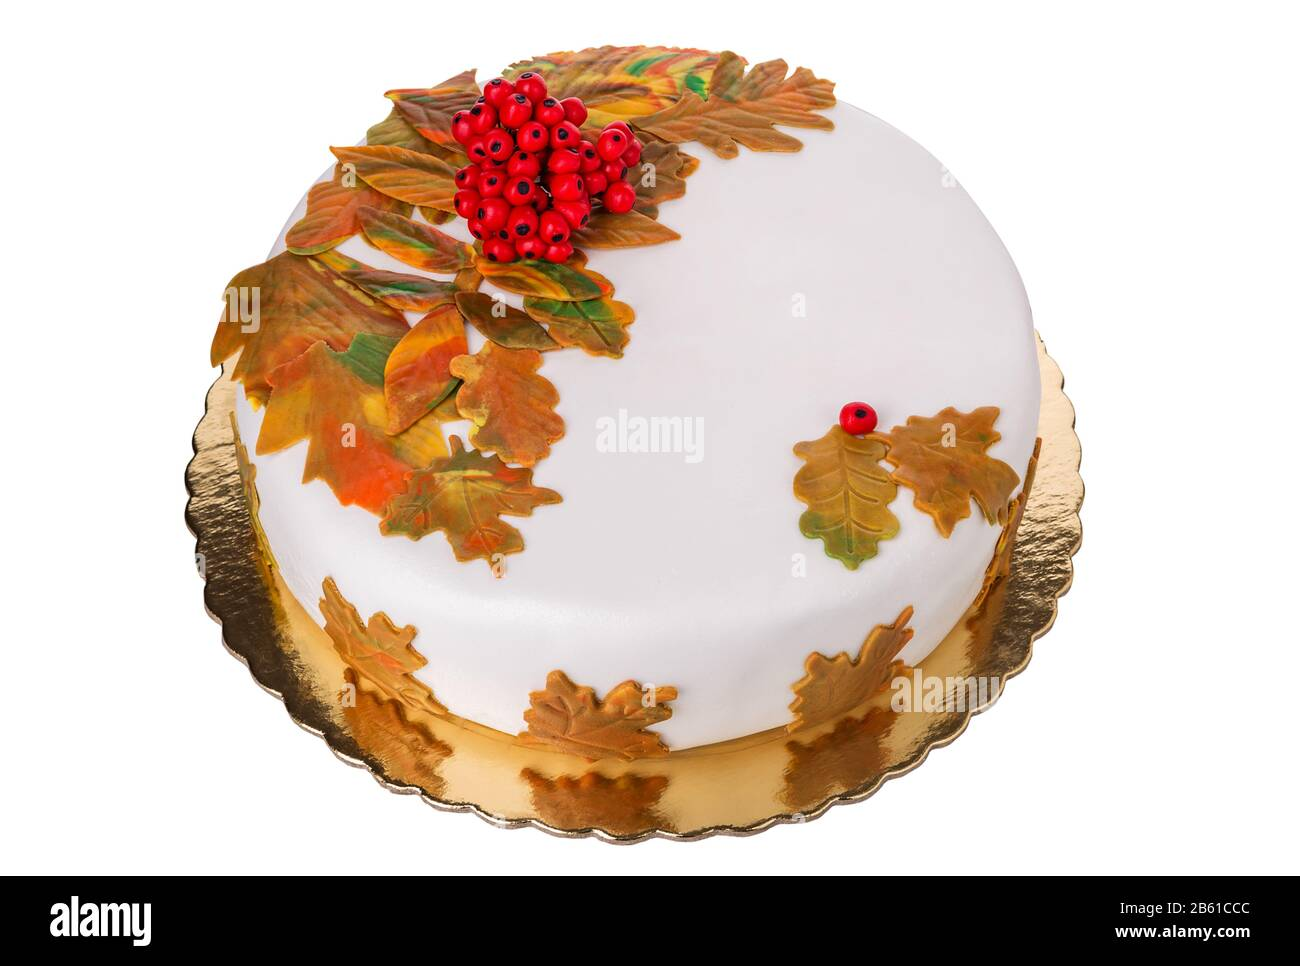 Remarkable Autumn Birthday Cake Beautiful And Delicious Stock Photo Funny Birthday Cards Online Aboleapandamsfinfo